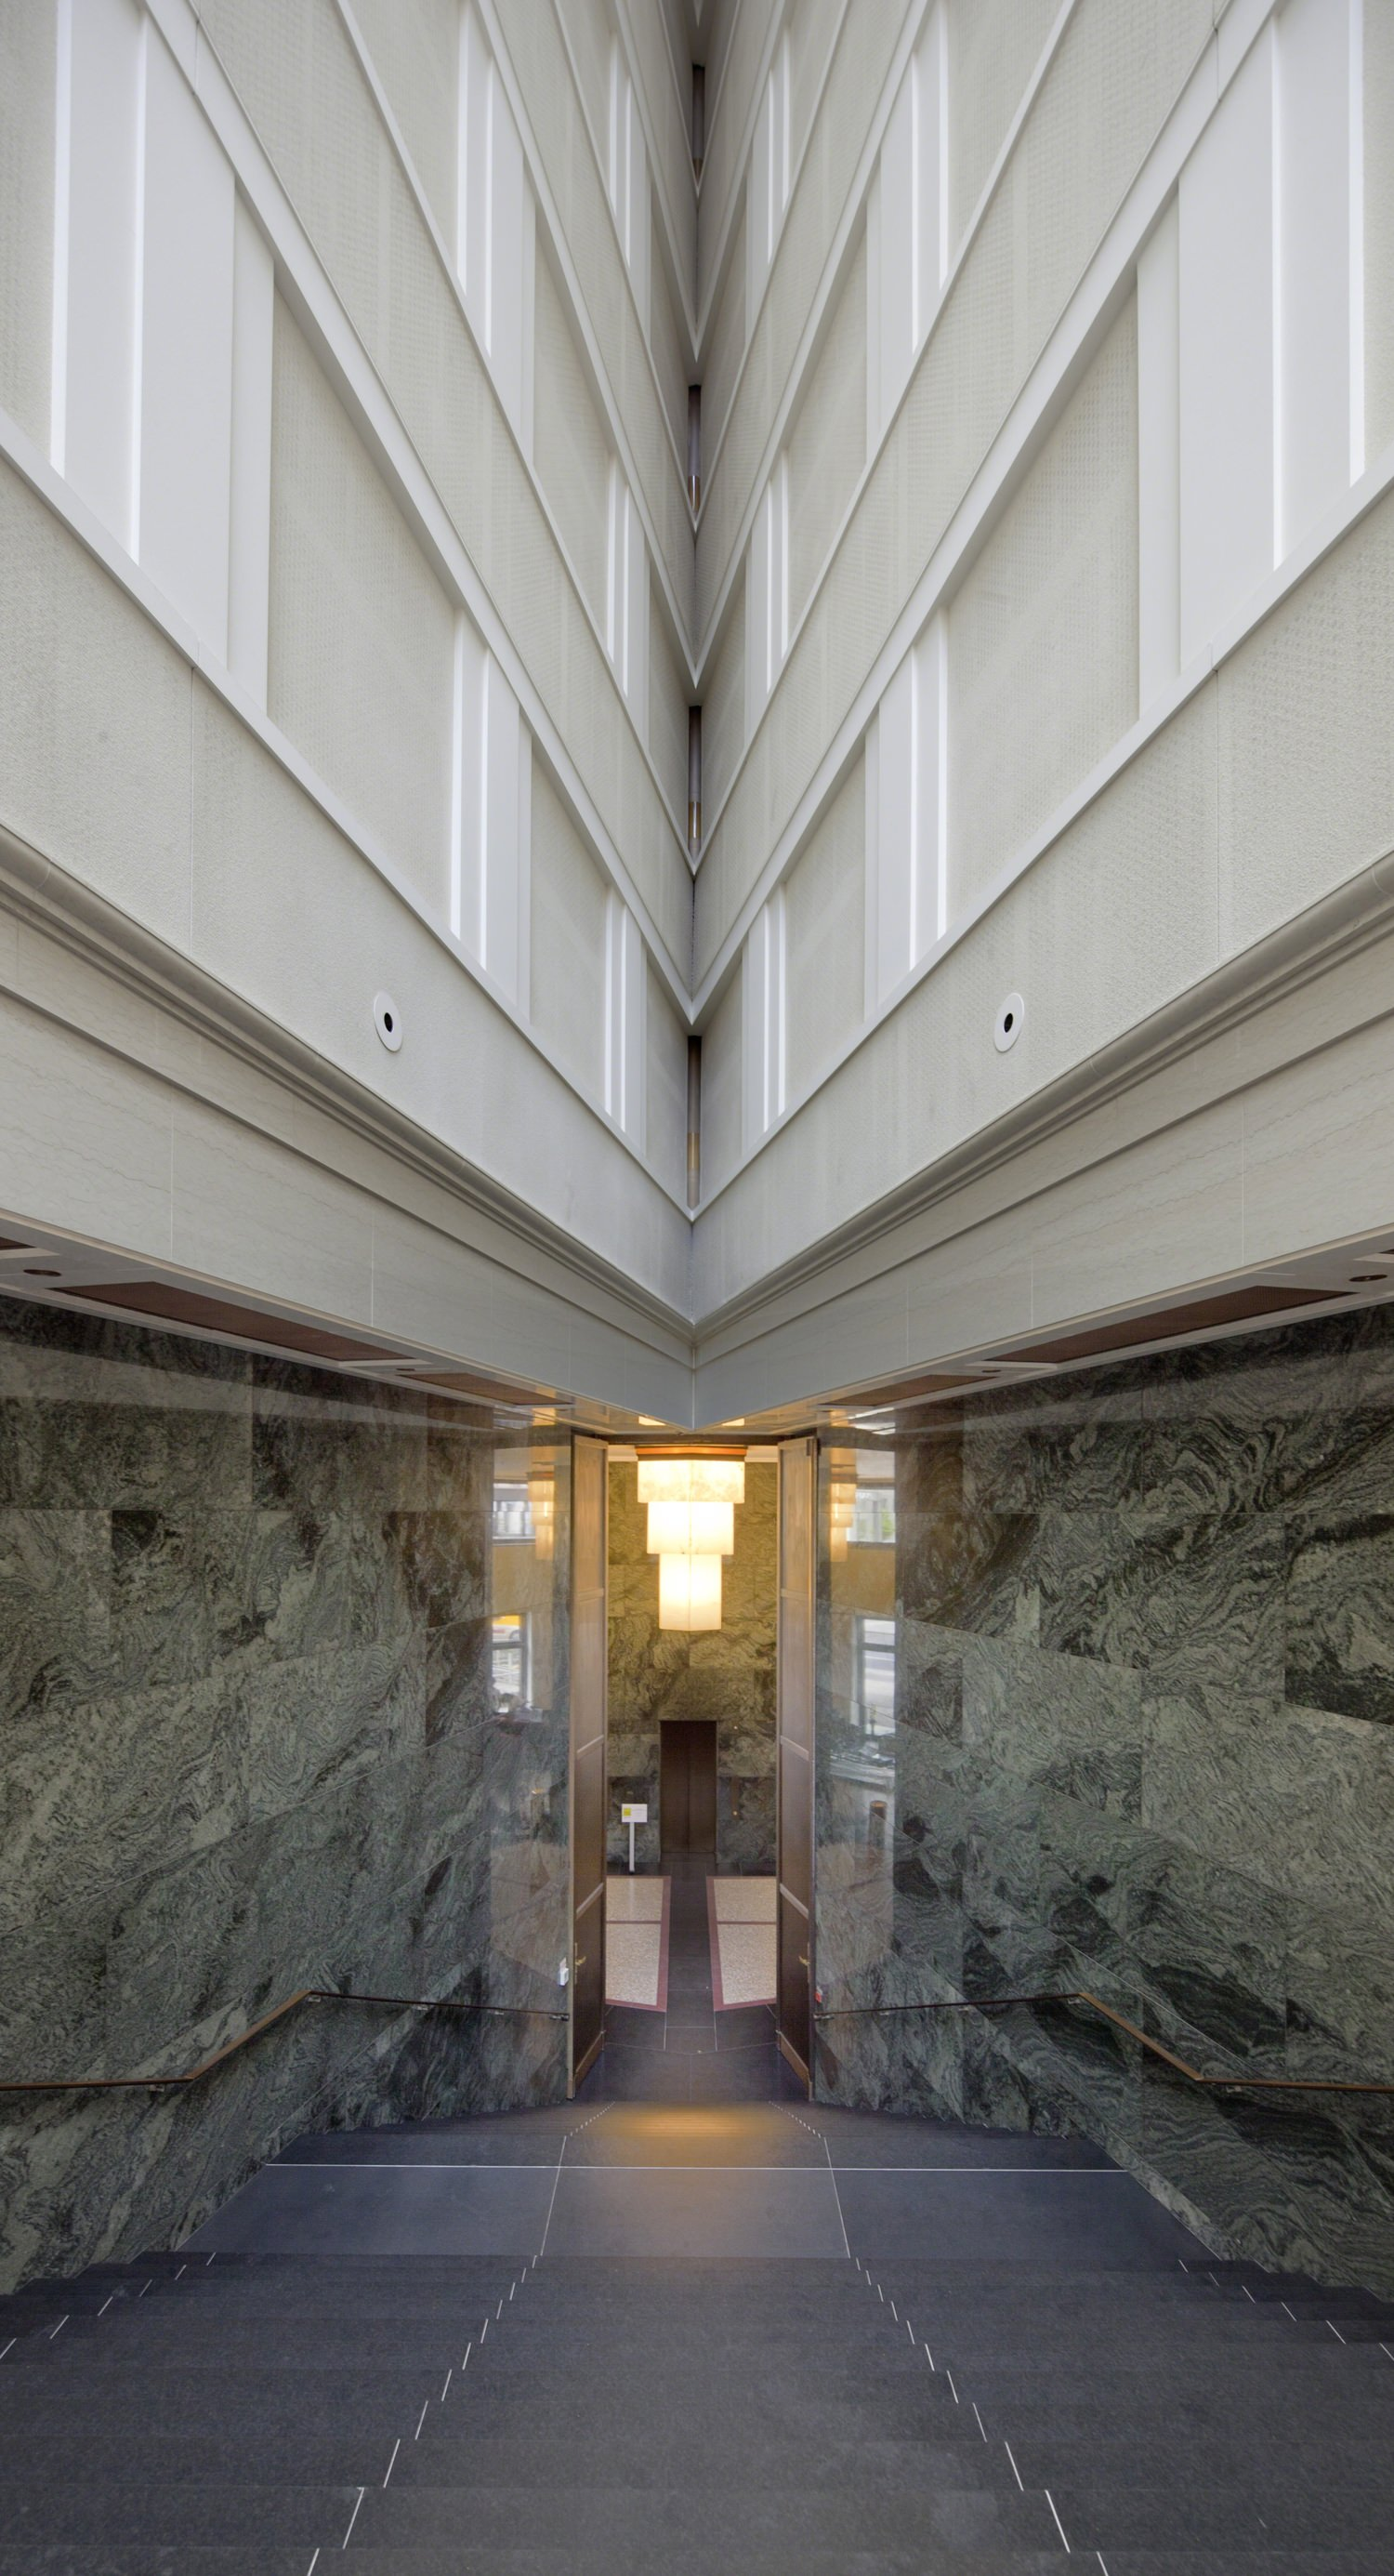 A glass door opens to the sidewalk in a stone room in a building with a white top.